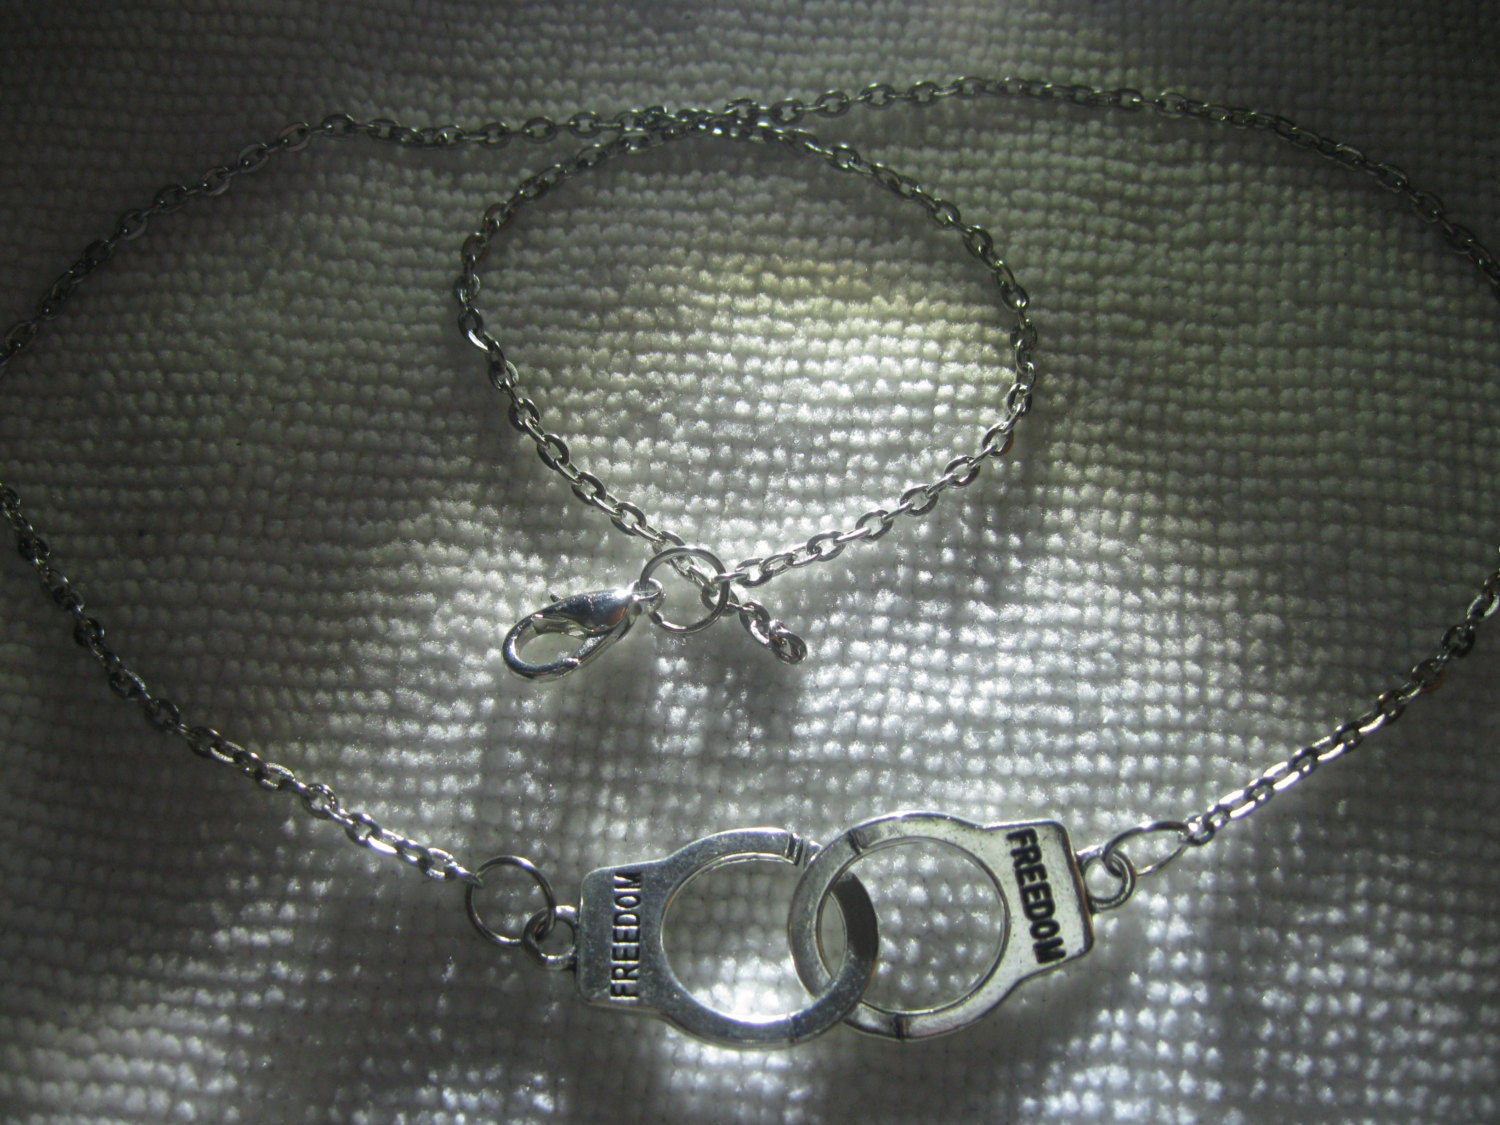 freedom nancy grace handcuffs necklace